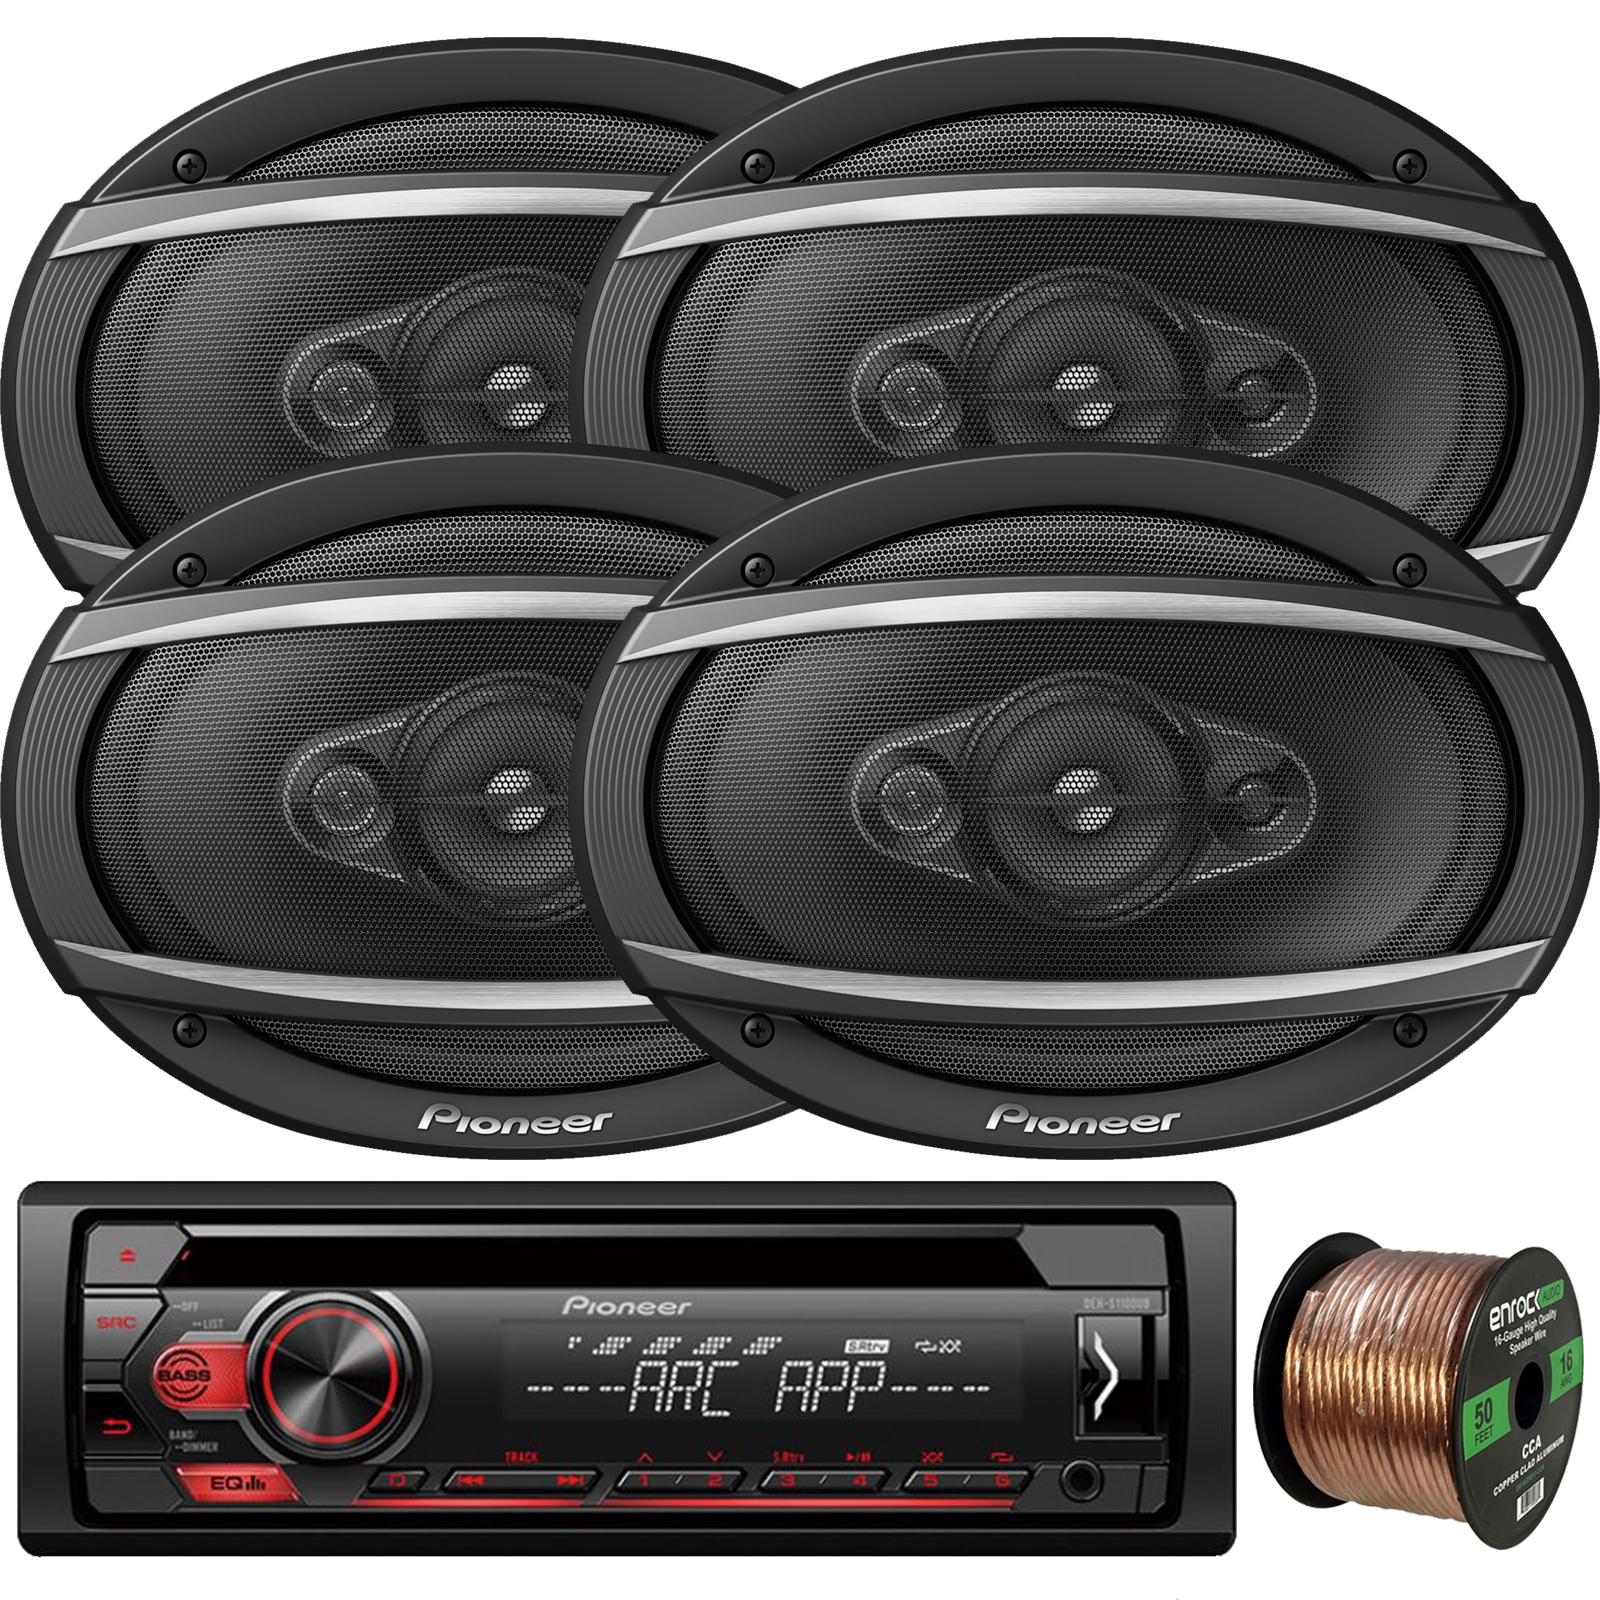 "Pioneer DEH-S1100UB Single-DIN CD Player AM/FM Car Stereo Receiver, 4 x Pioneer TS-A6960F 6x9"" 4-Way 450W Car Audio Speakers, Enrock Audio 16-Gauge 50Ft. CCA Speaker Wire"